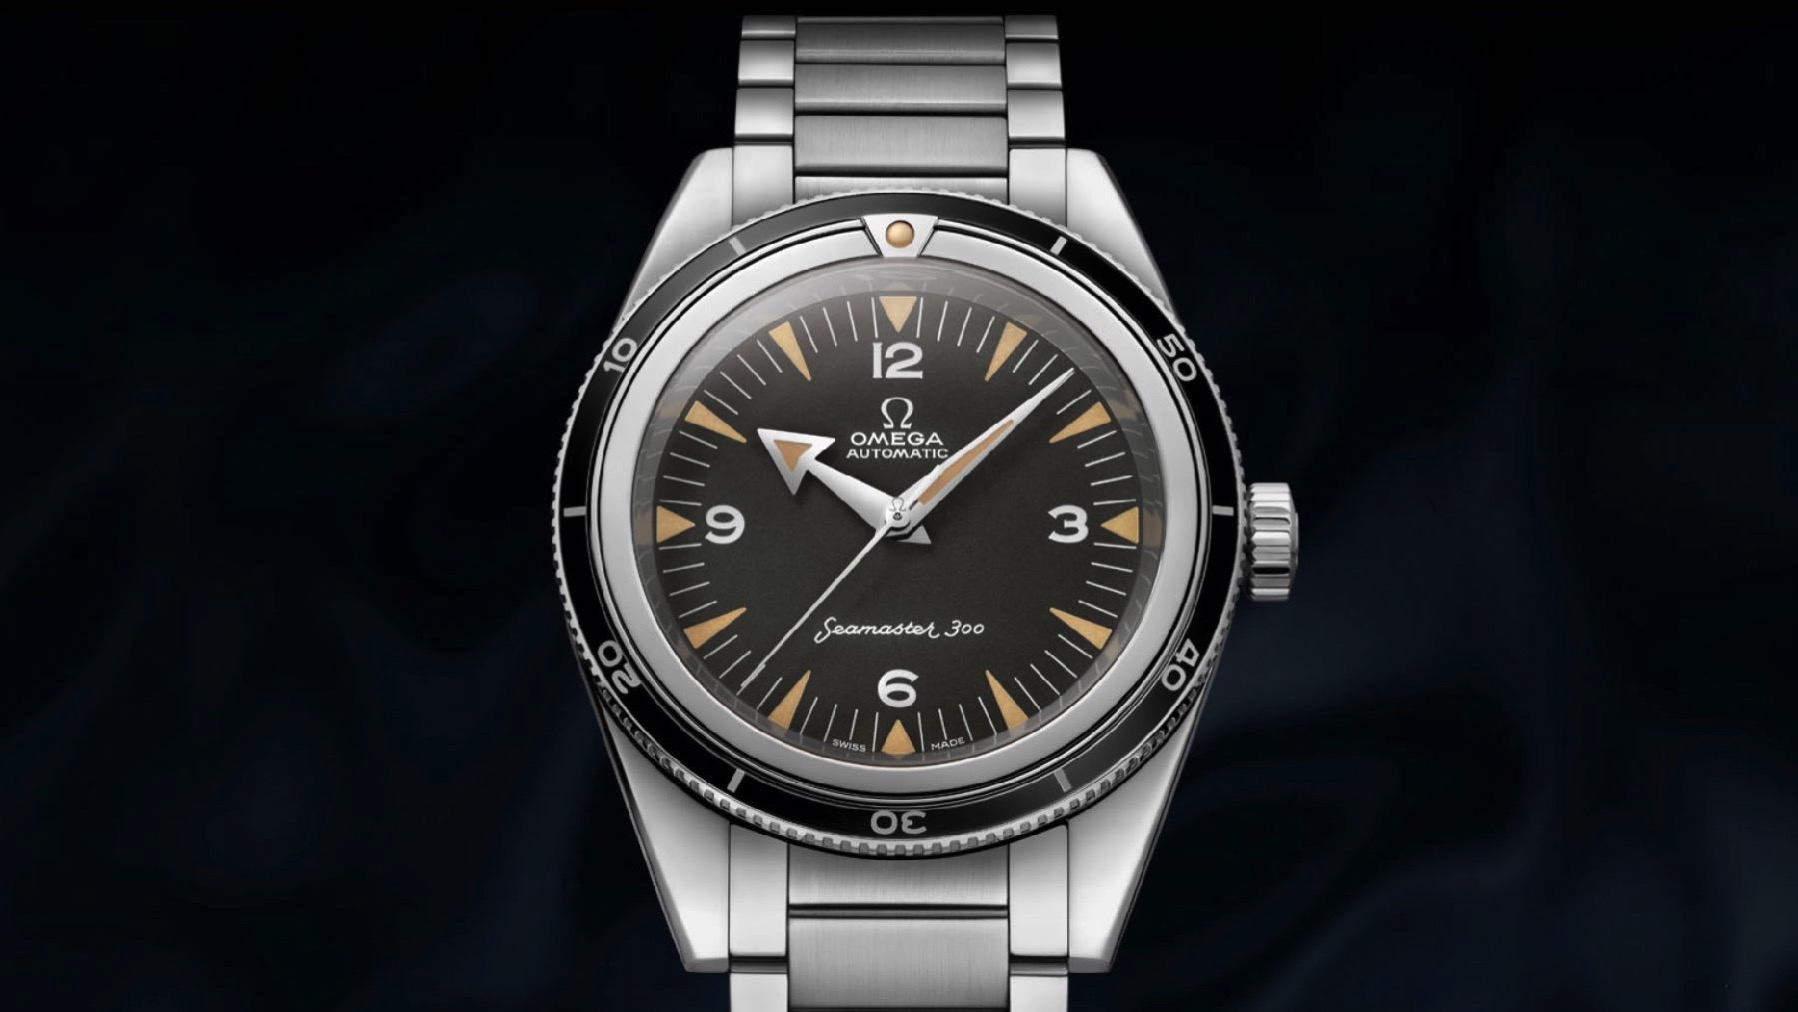 01 OMEGA 1957 Trilogy Limit Edition Seamaster